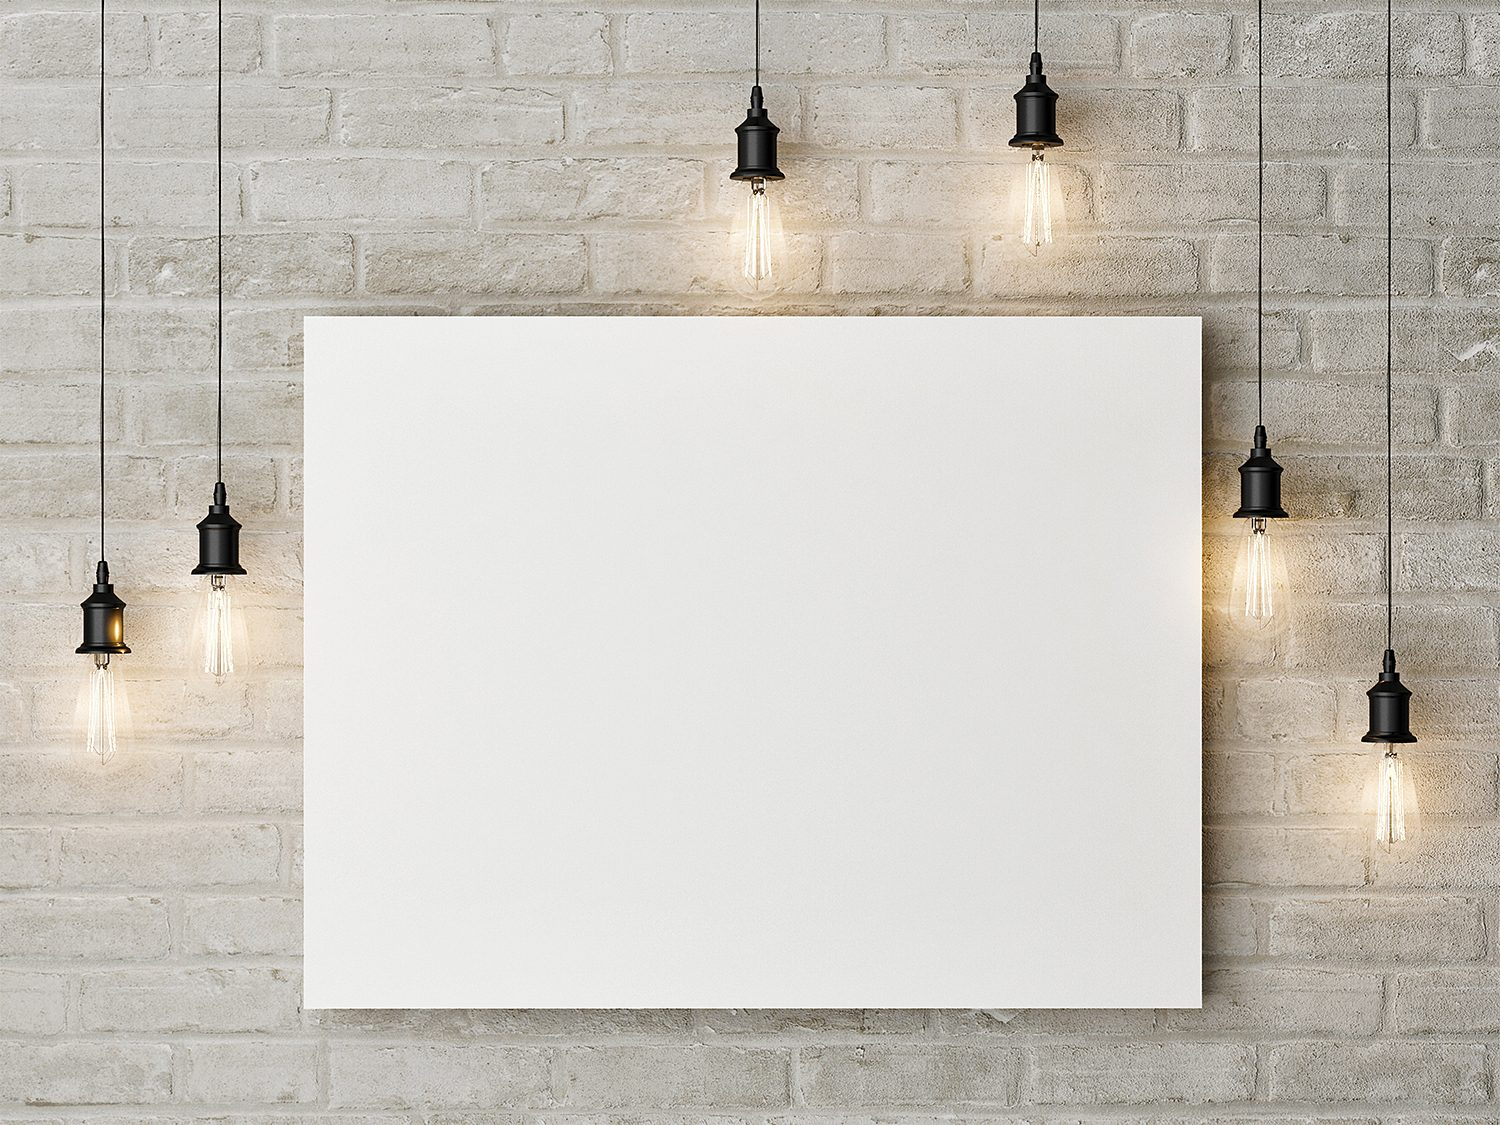 Free Canvas Painting Mockup on a Wall